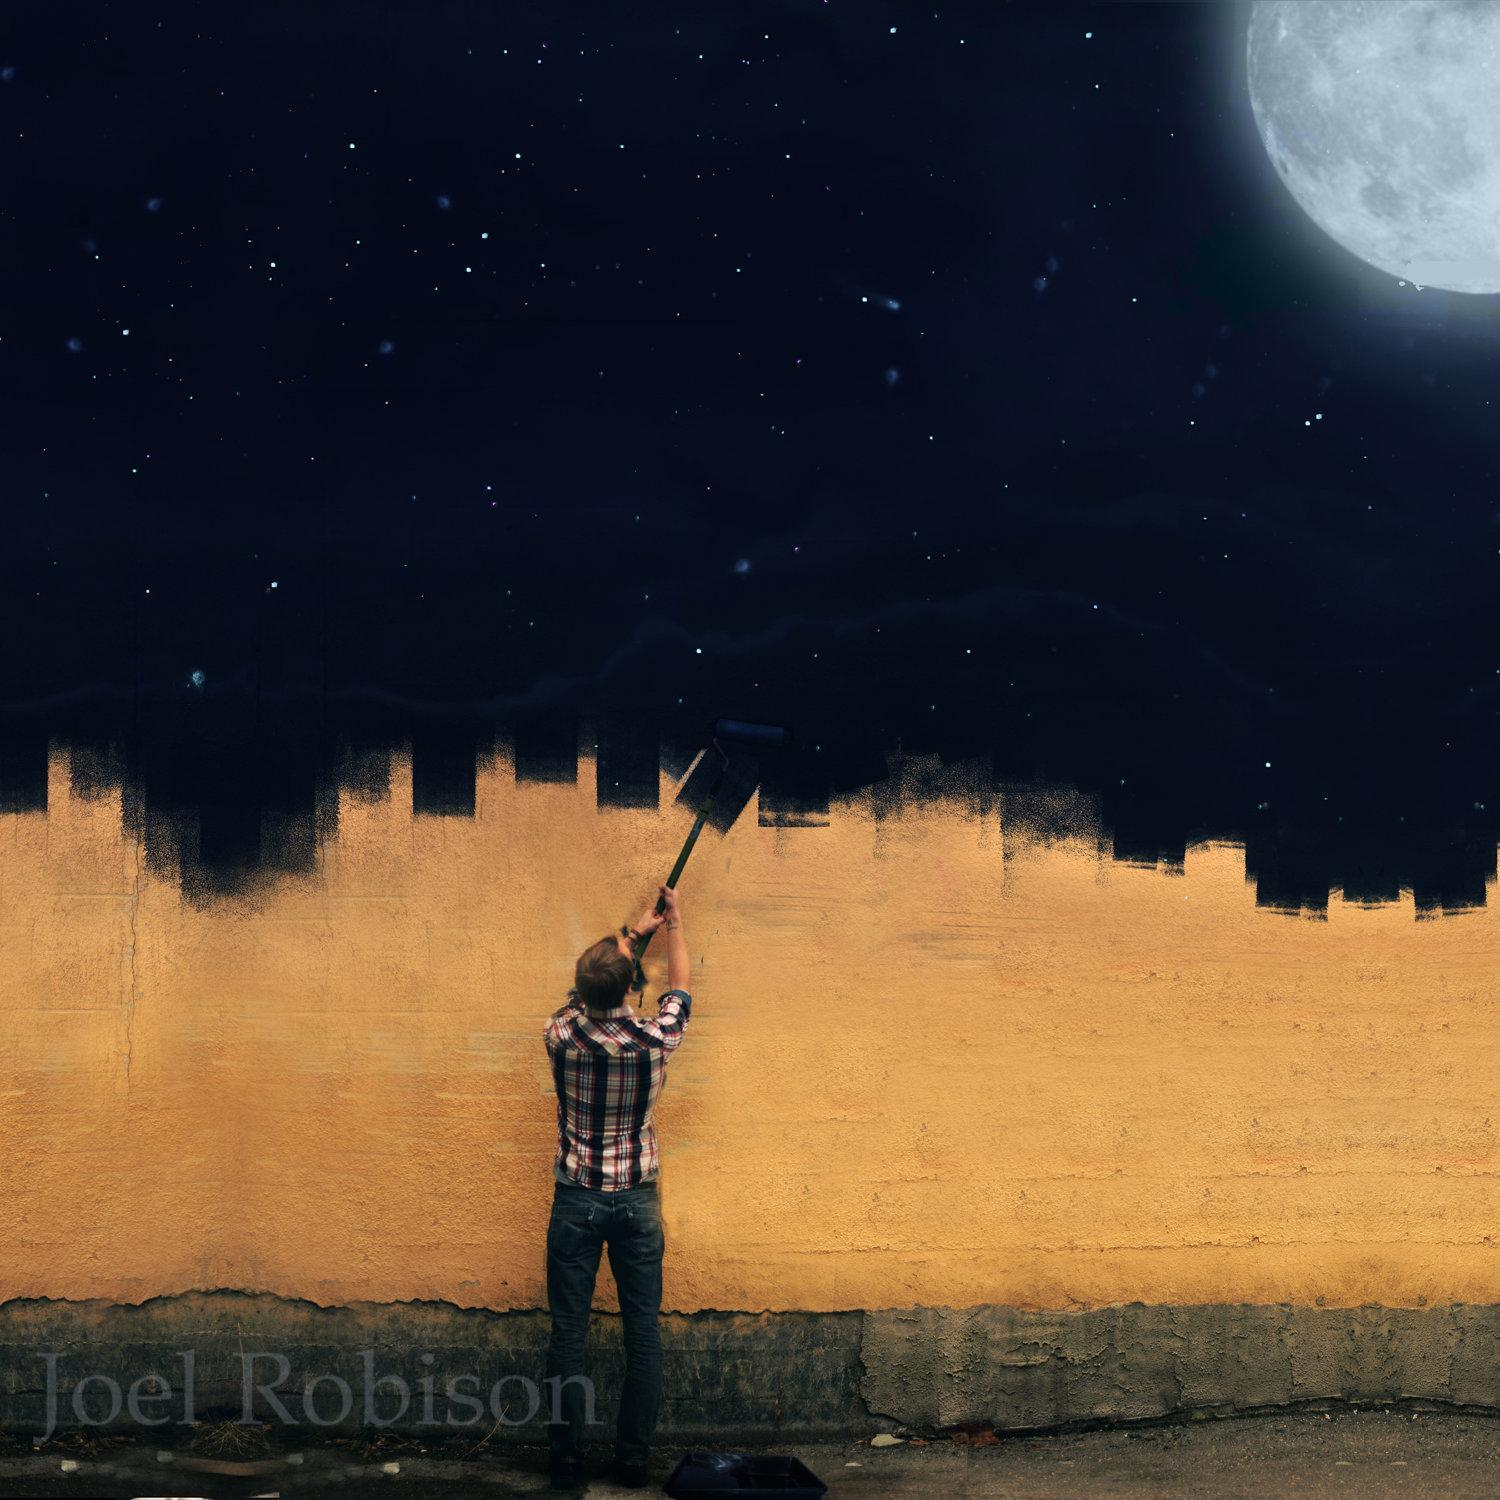 joel-robinson-night-sky